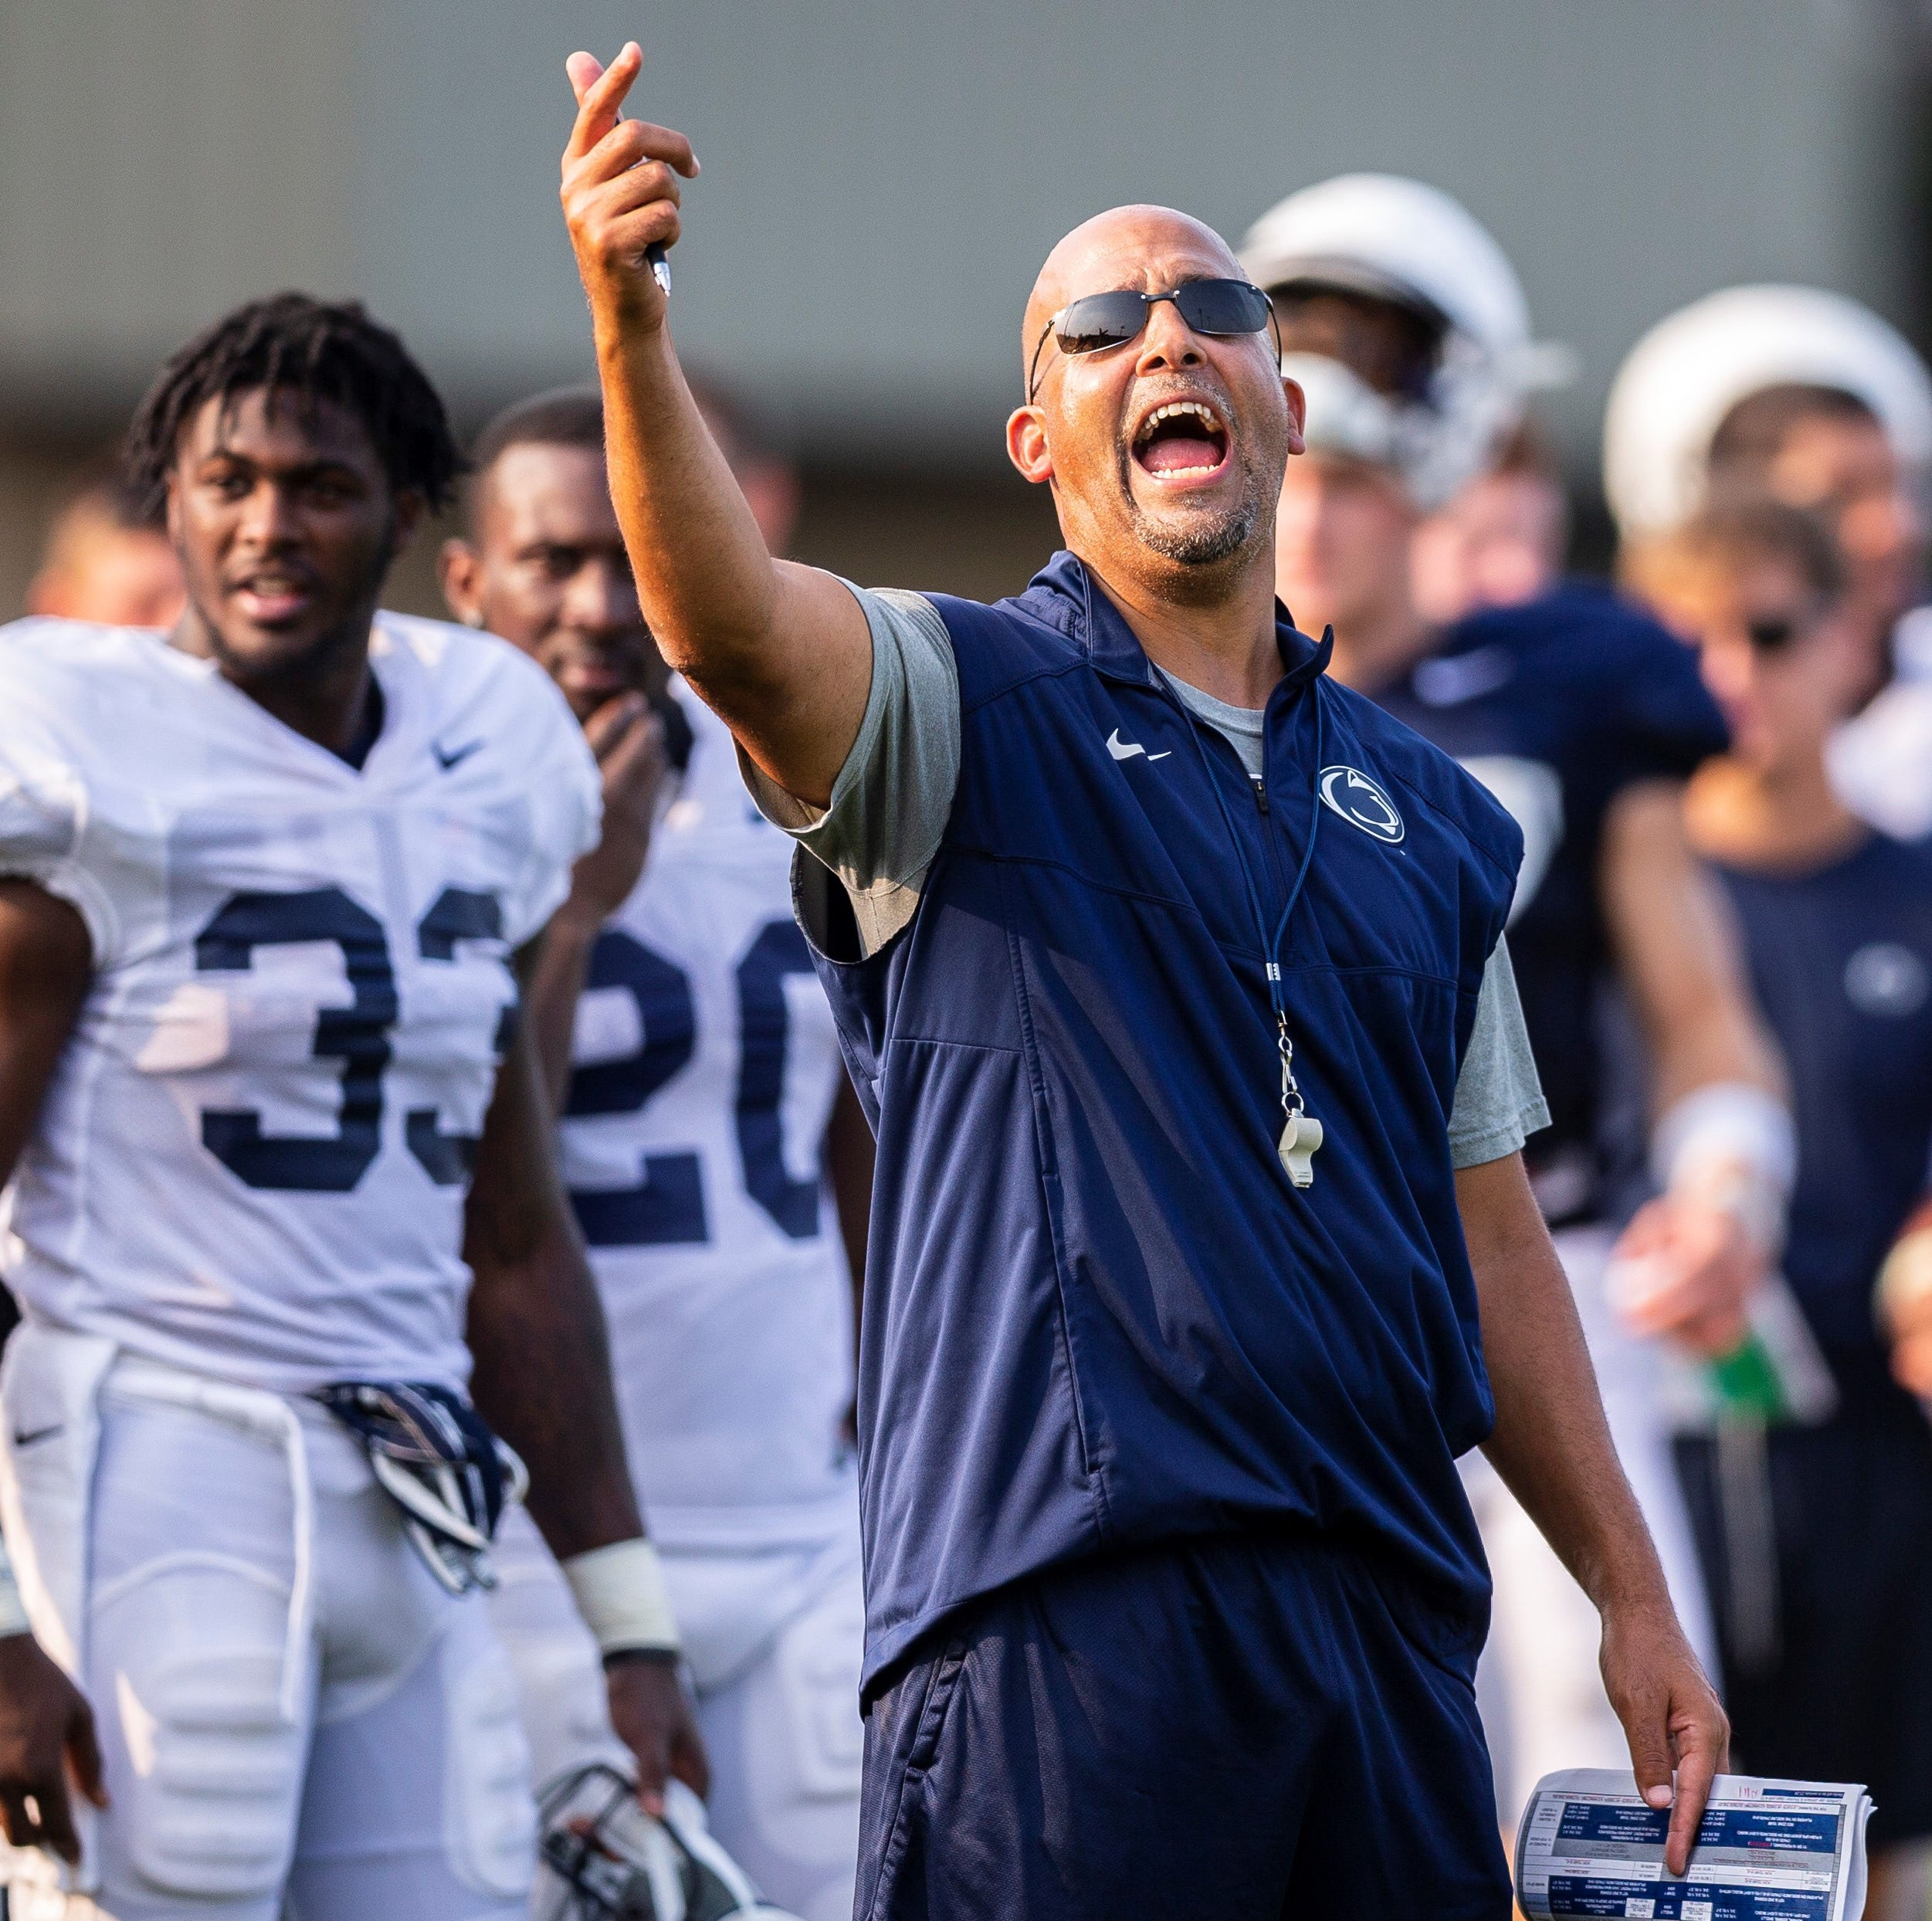 In poll of peers, Penn State's James Franklin voted one of most overrated college coaches